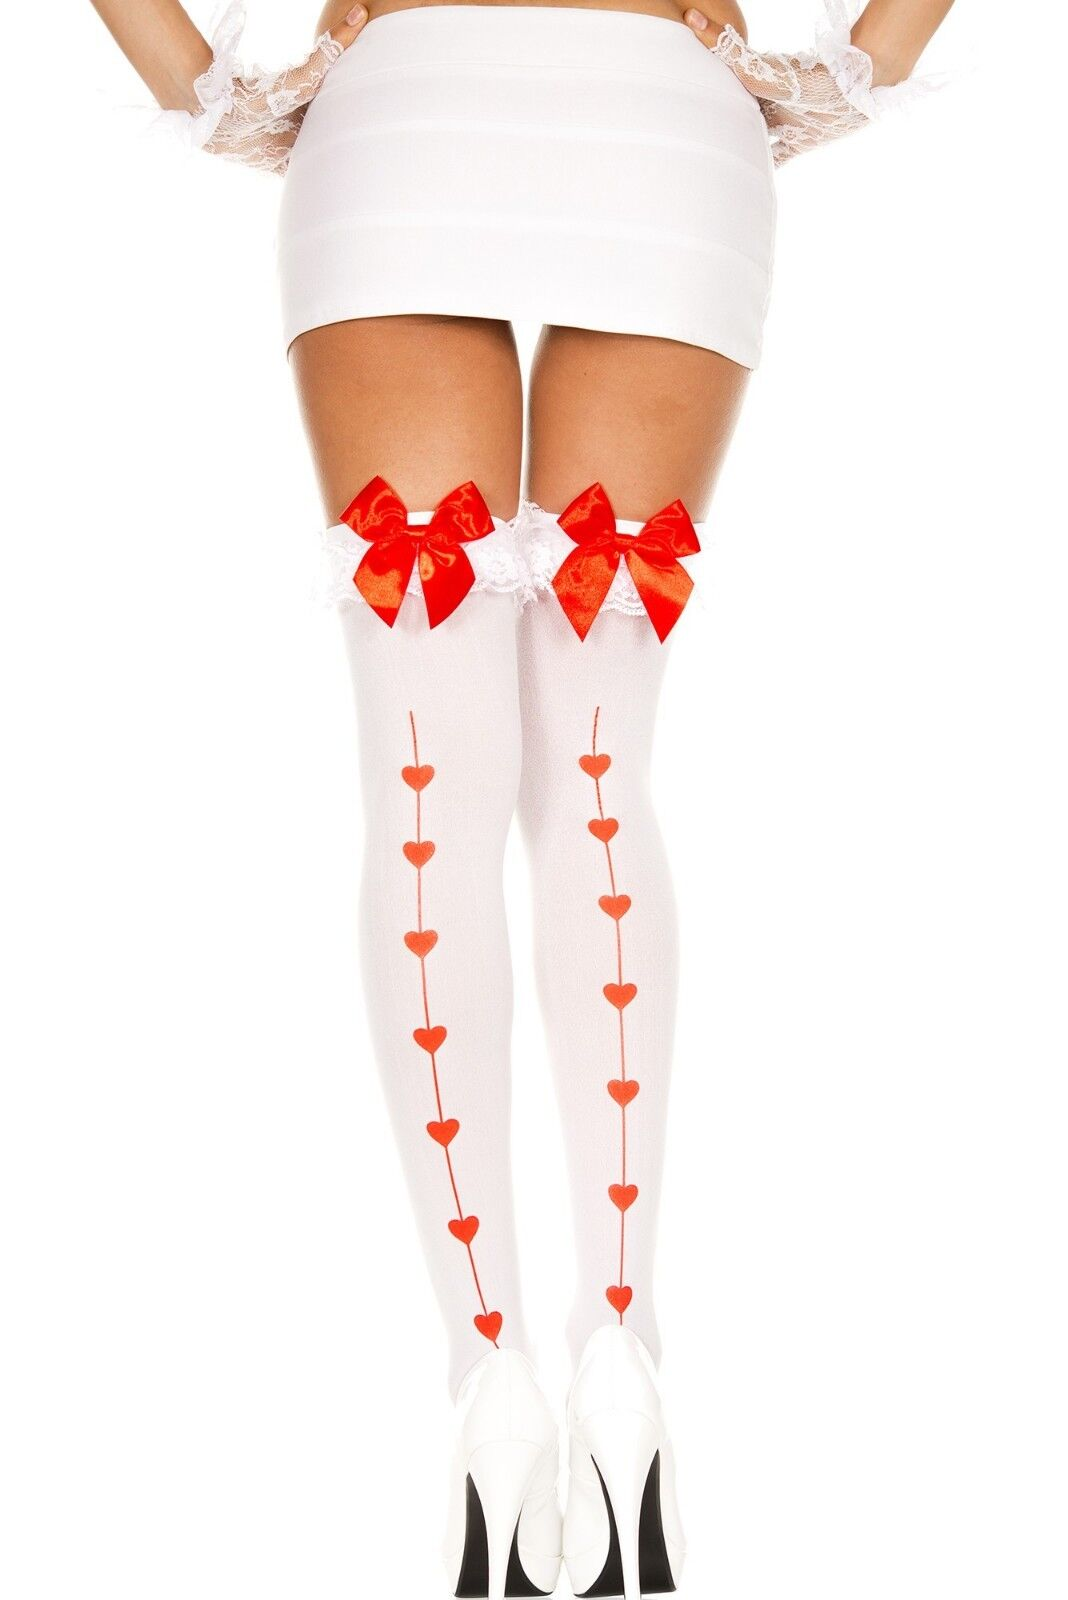 Valentines Day Stockings and Lingerie - Mayfair Stockings